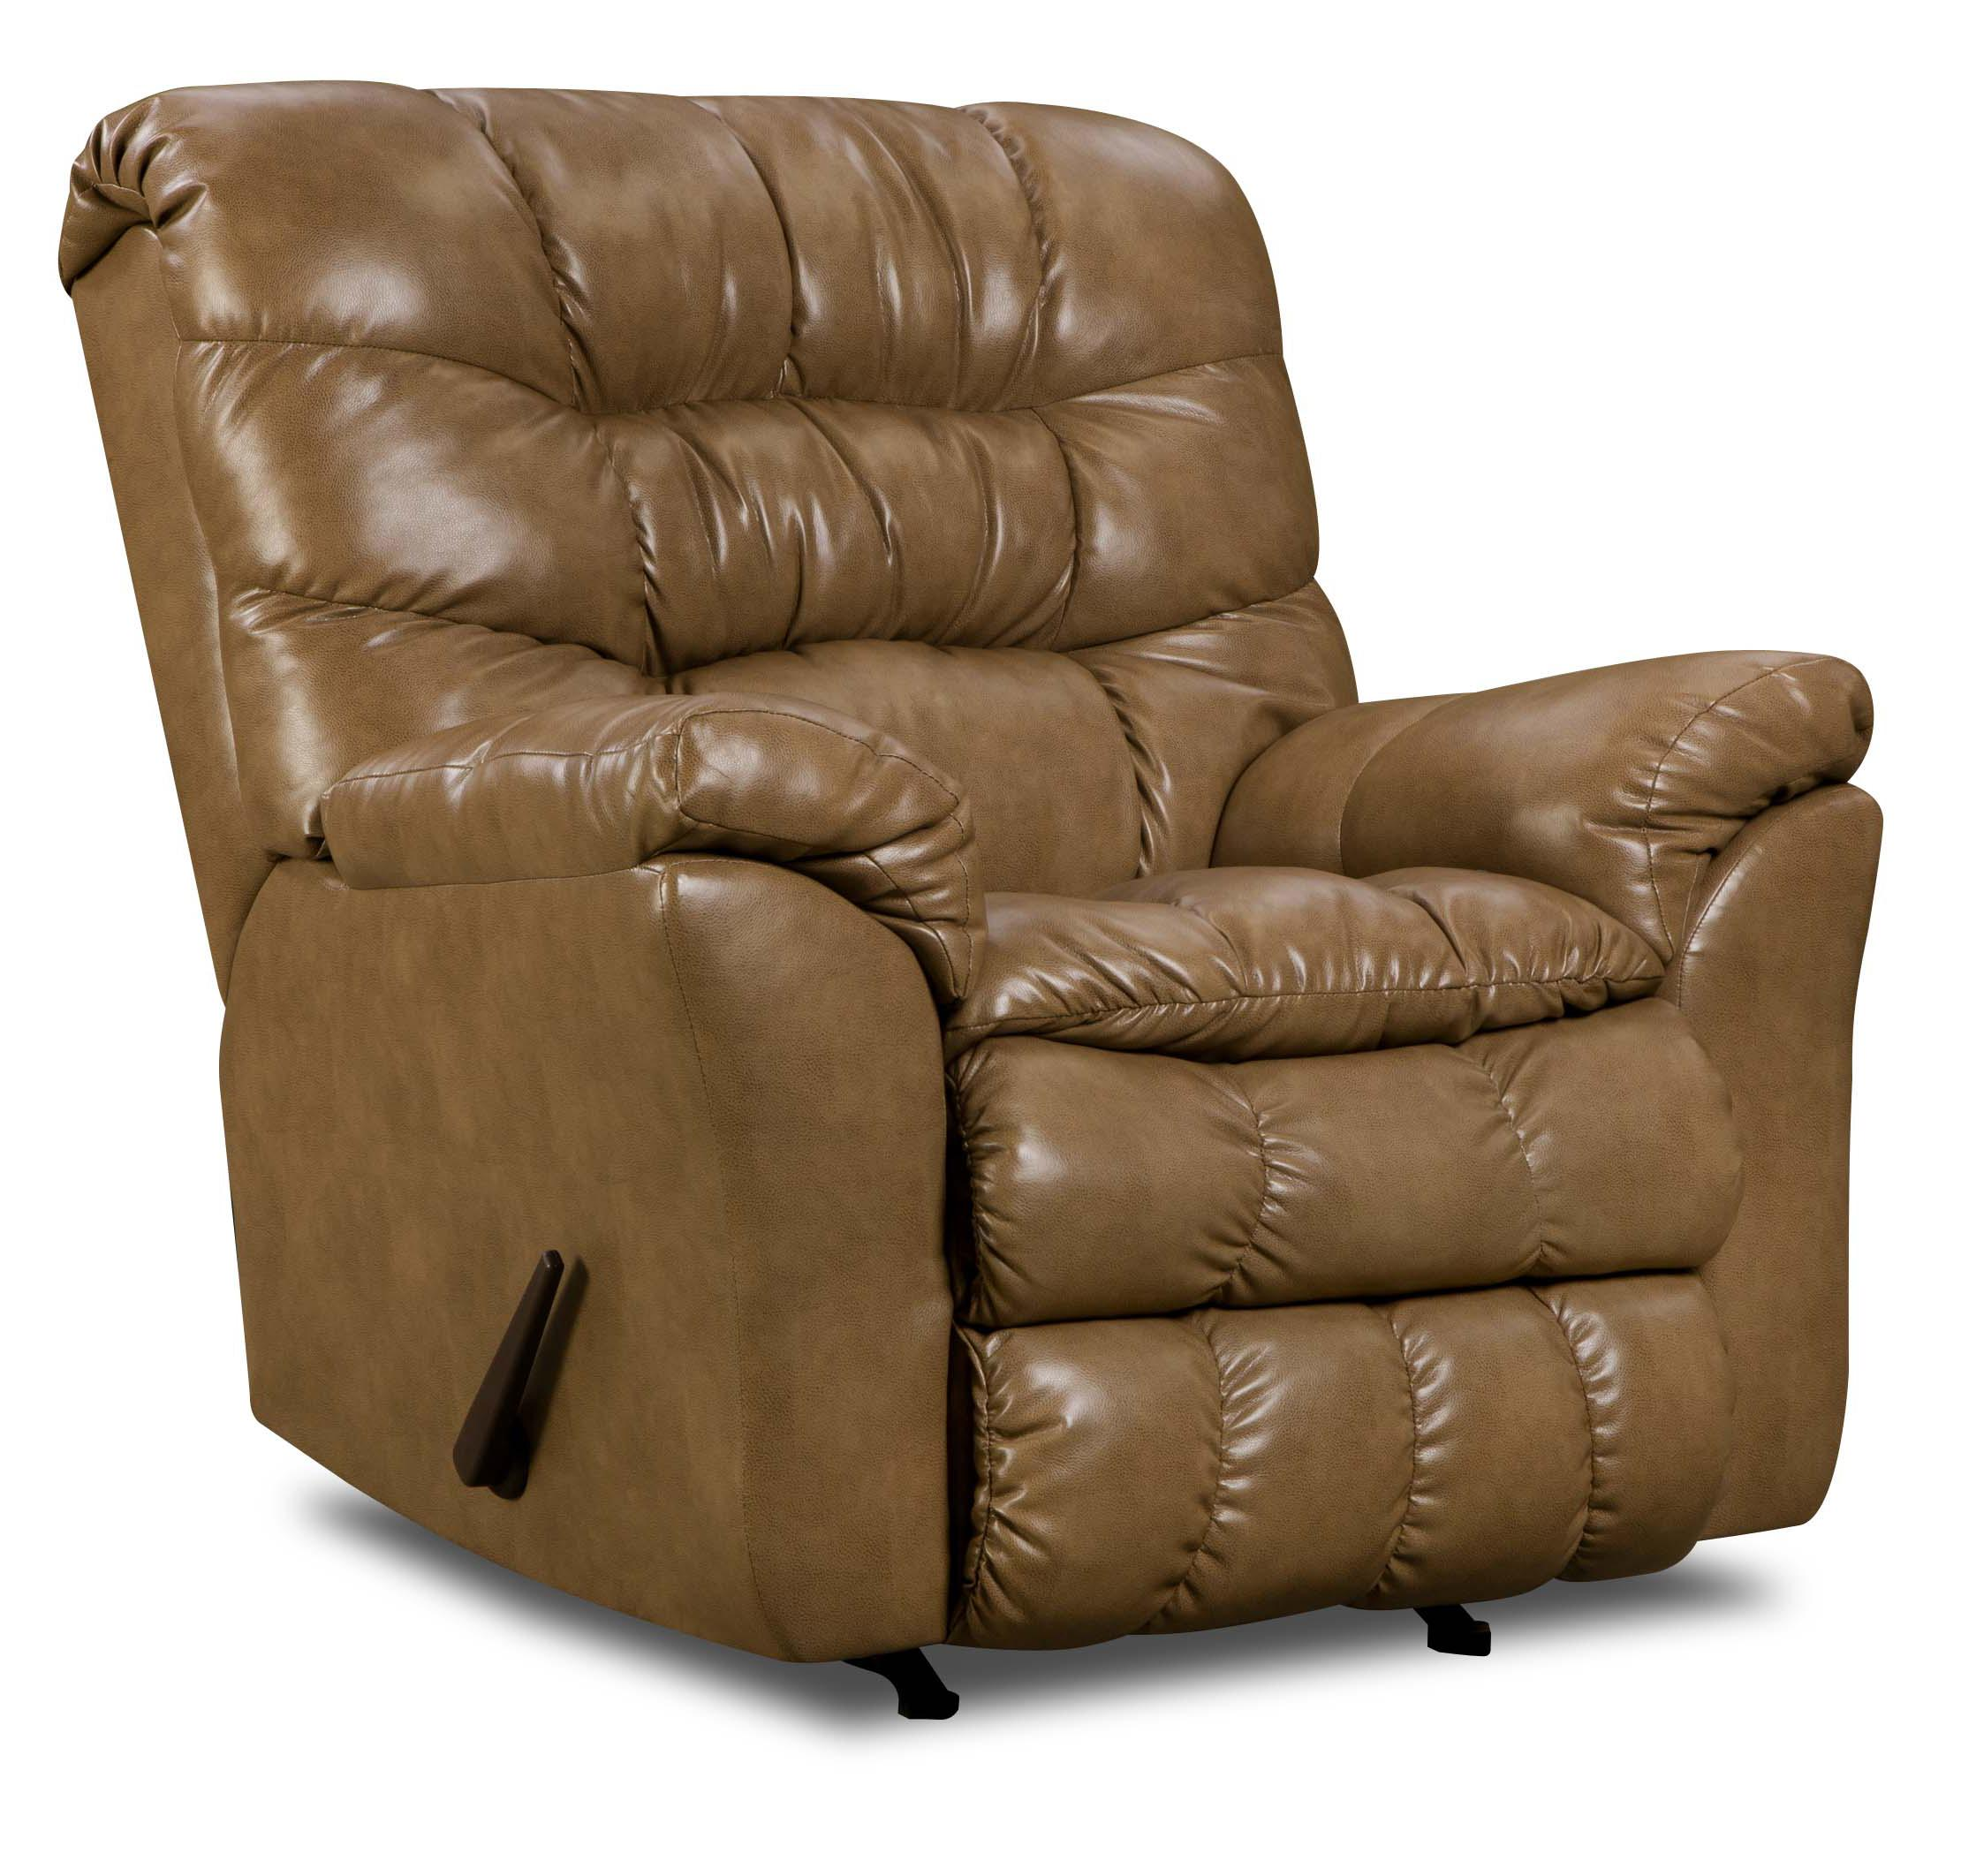 United Furniture Industries 689 Casual Power Rocker Recliner - Item Number: 689-P Rocker Toast